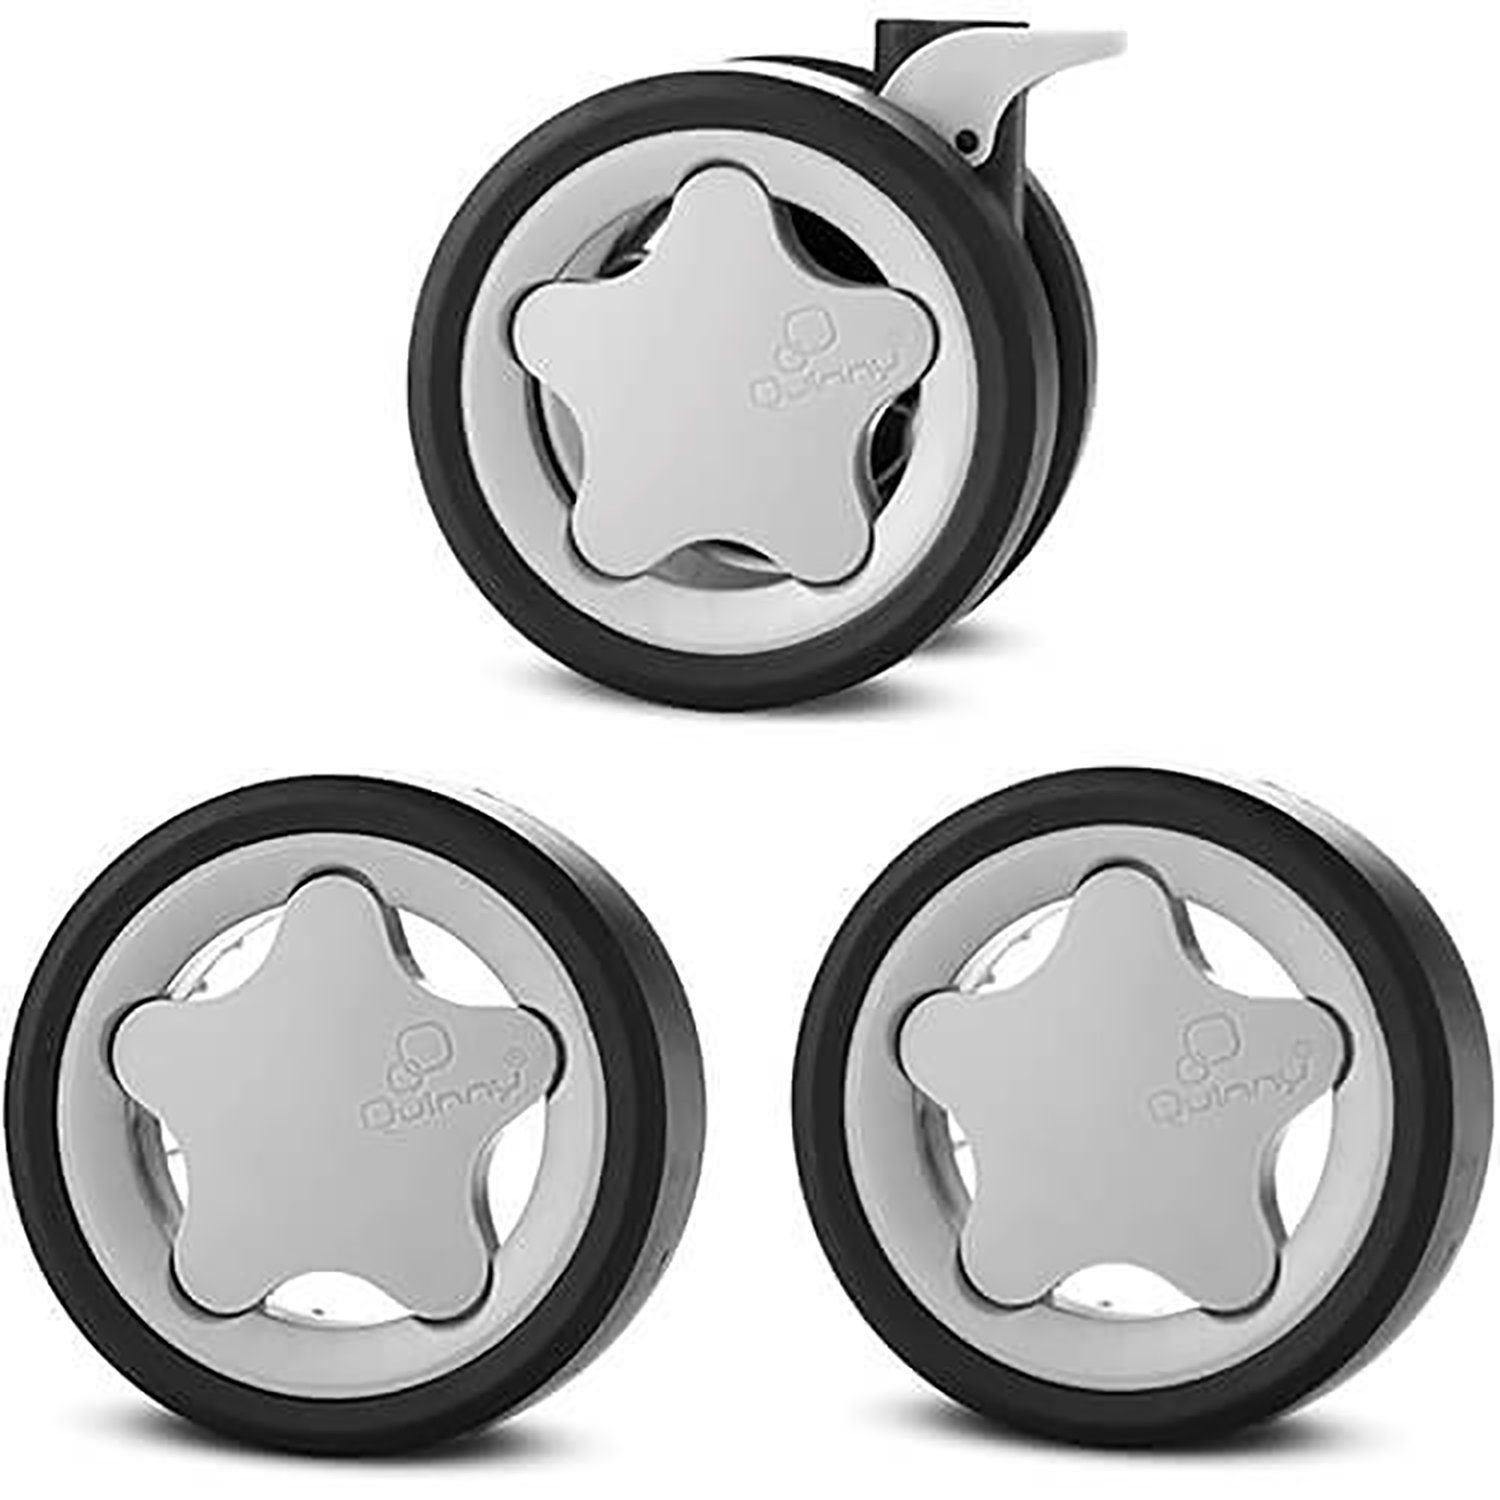 Quinny Zapp wheels set gray (1X front wheel 2x rear / back wheels)